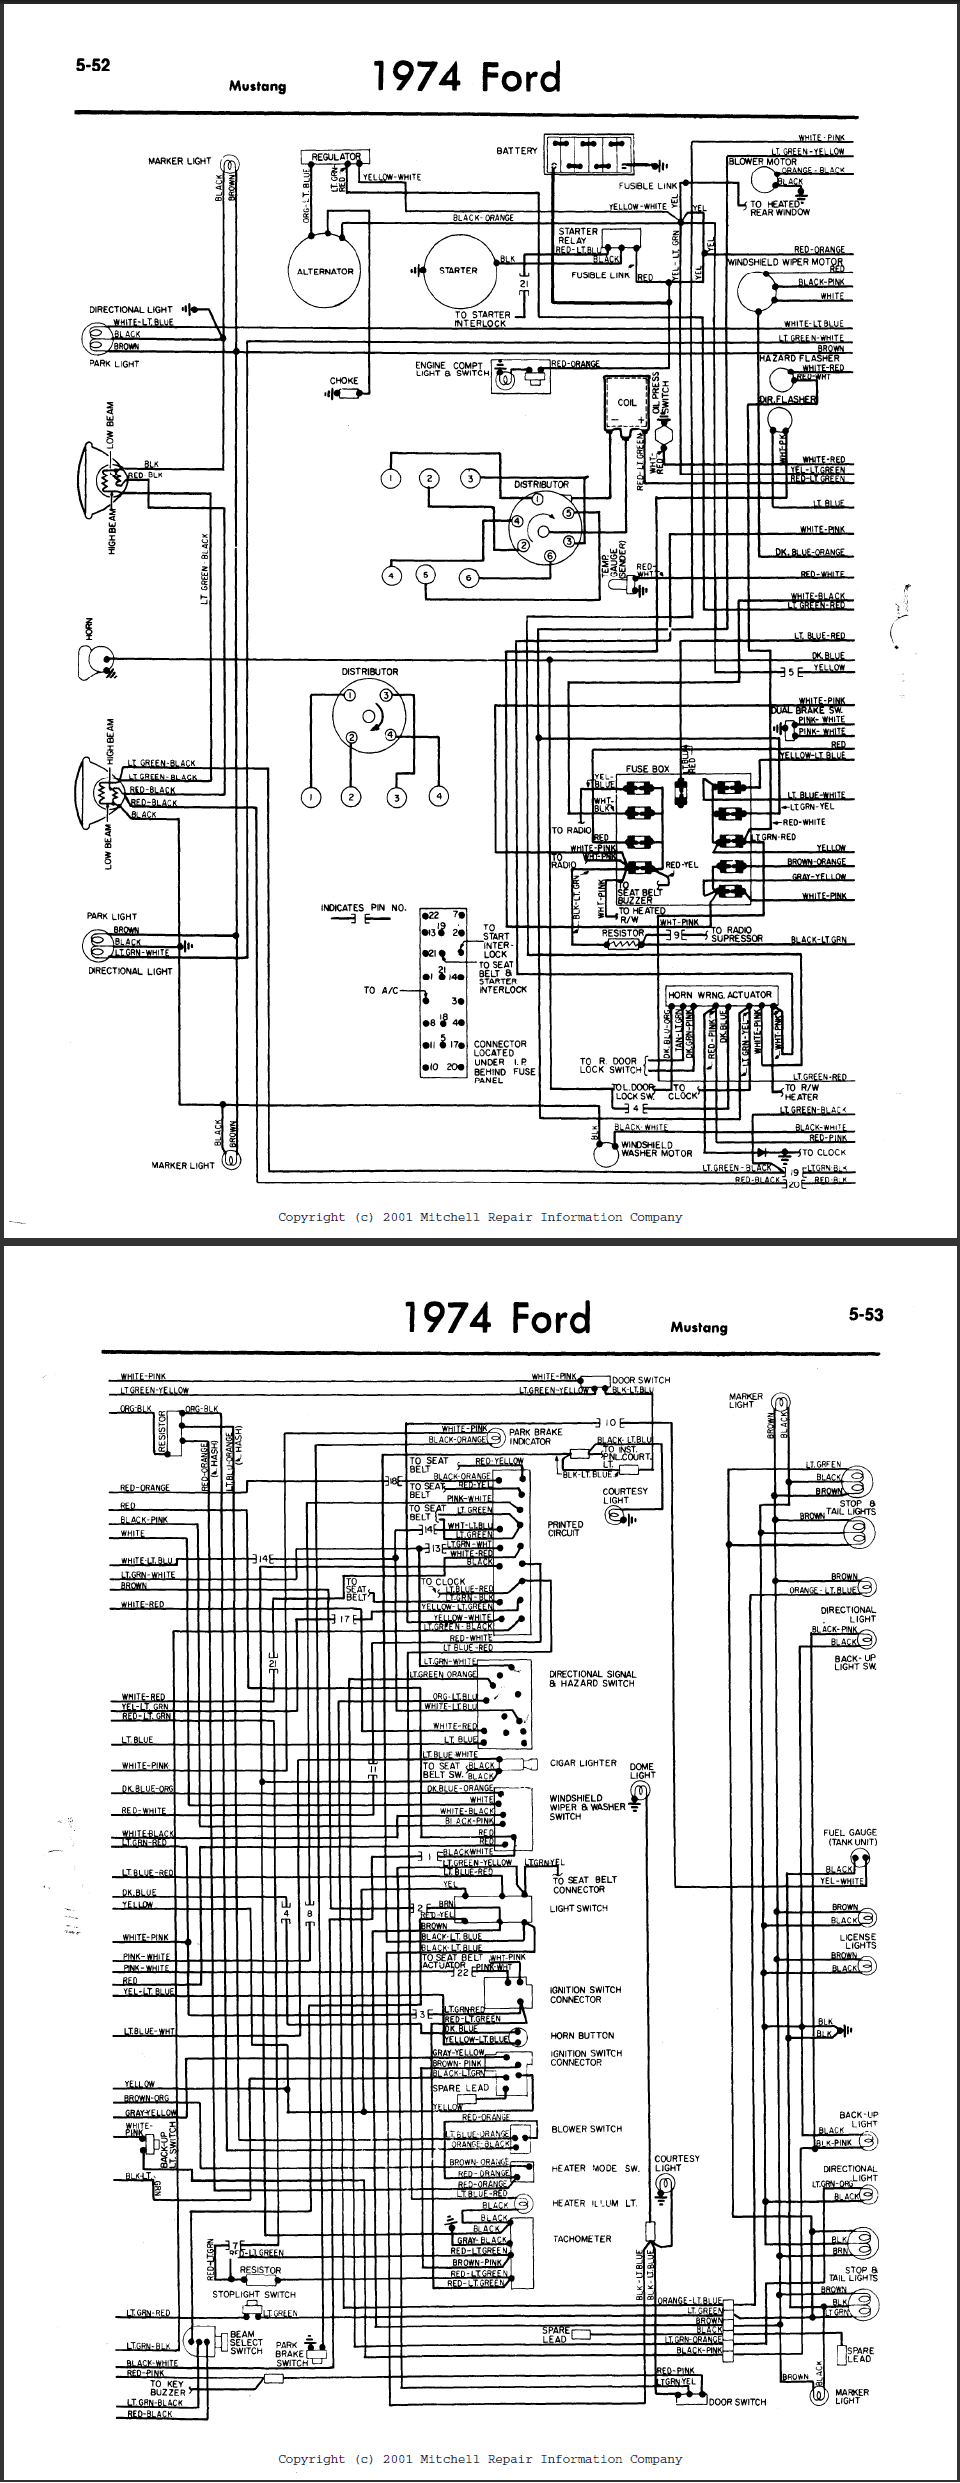 Diagram 1975 Ford Mustang Ii Wiring Diagram Full Version Hd Quality Wiring Diagram Diagramlemusg Jodenjoy It